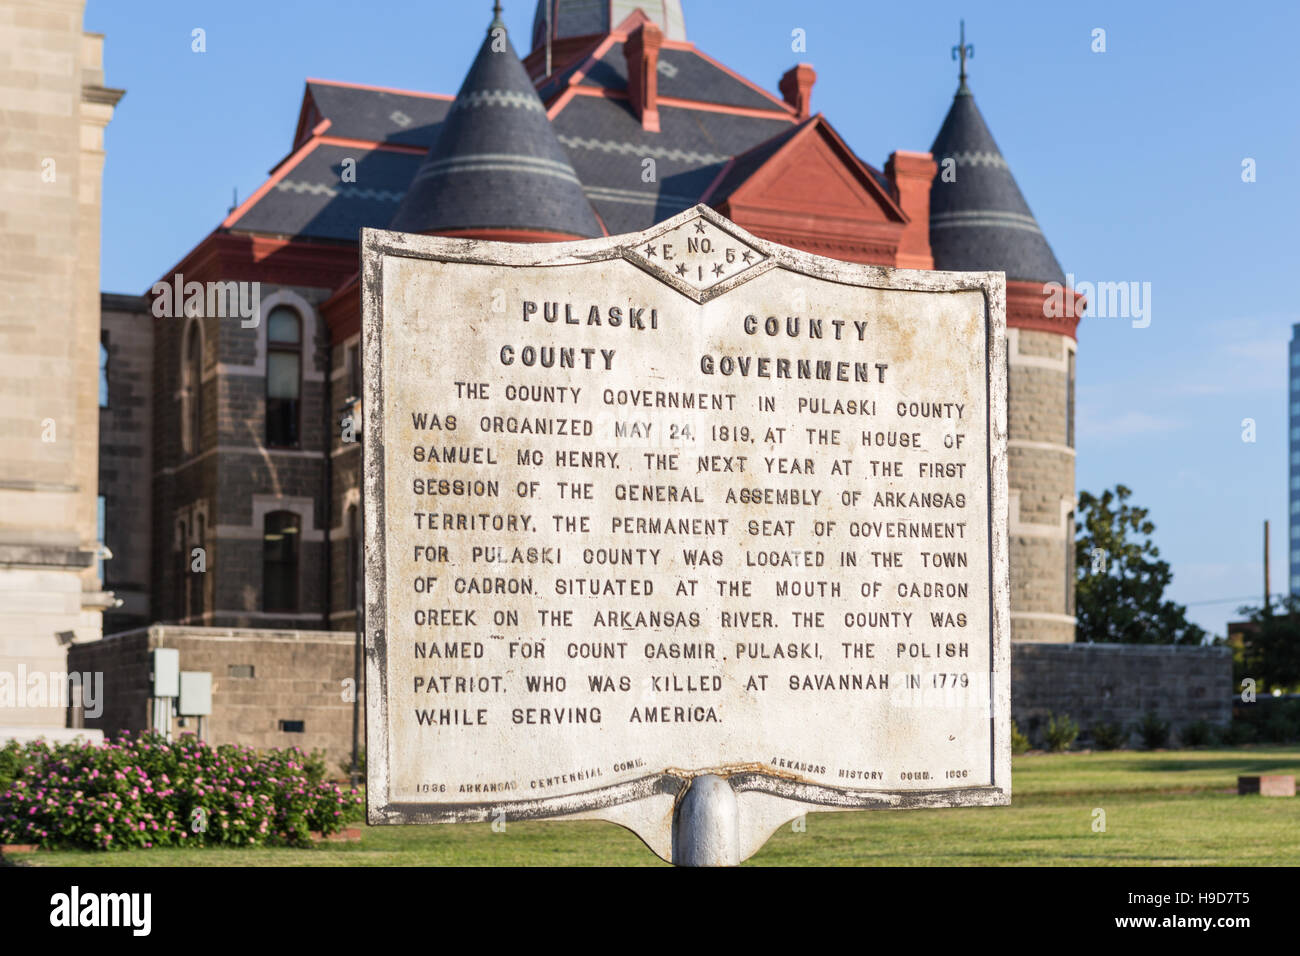 A historical marker summarizes the history of Pulaski County government outside the courthouse in Little Rock, Arkansas. Stock Photo